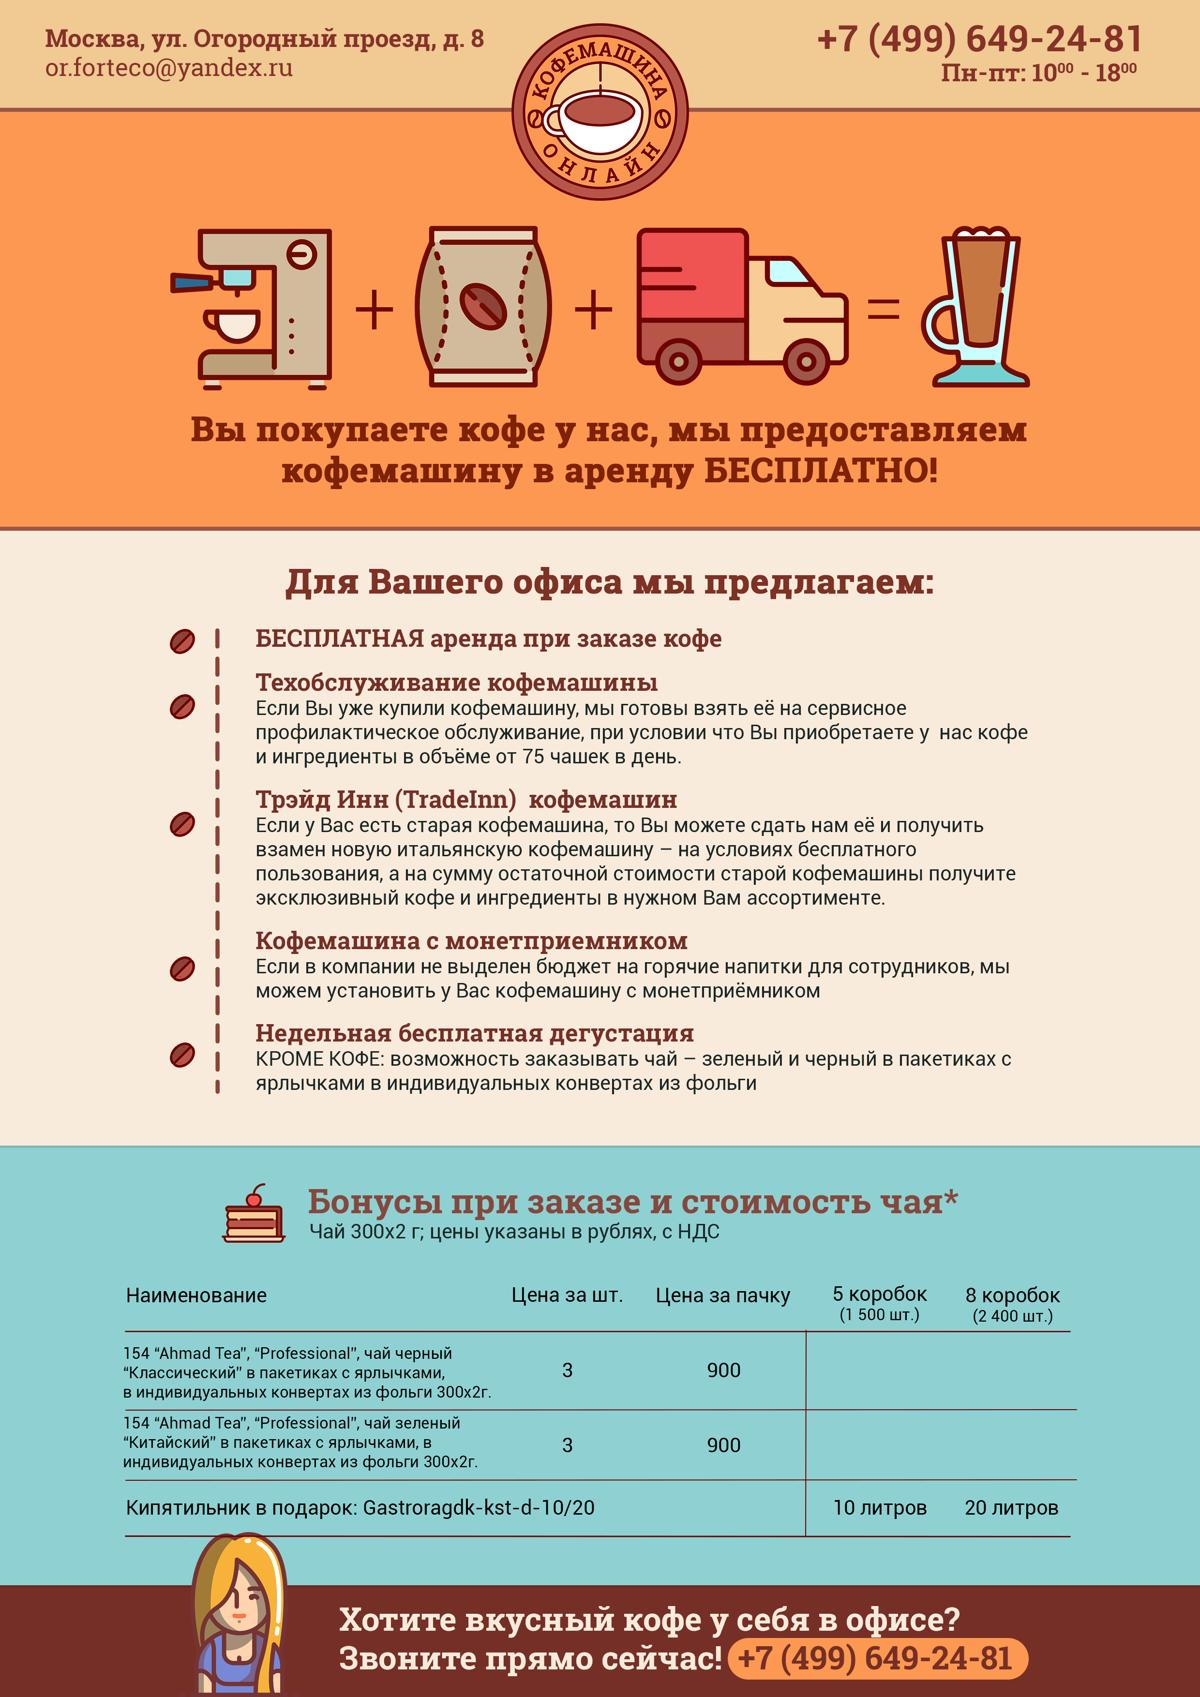 Leaflet design for Coffee Machine Online (Moscow)